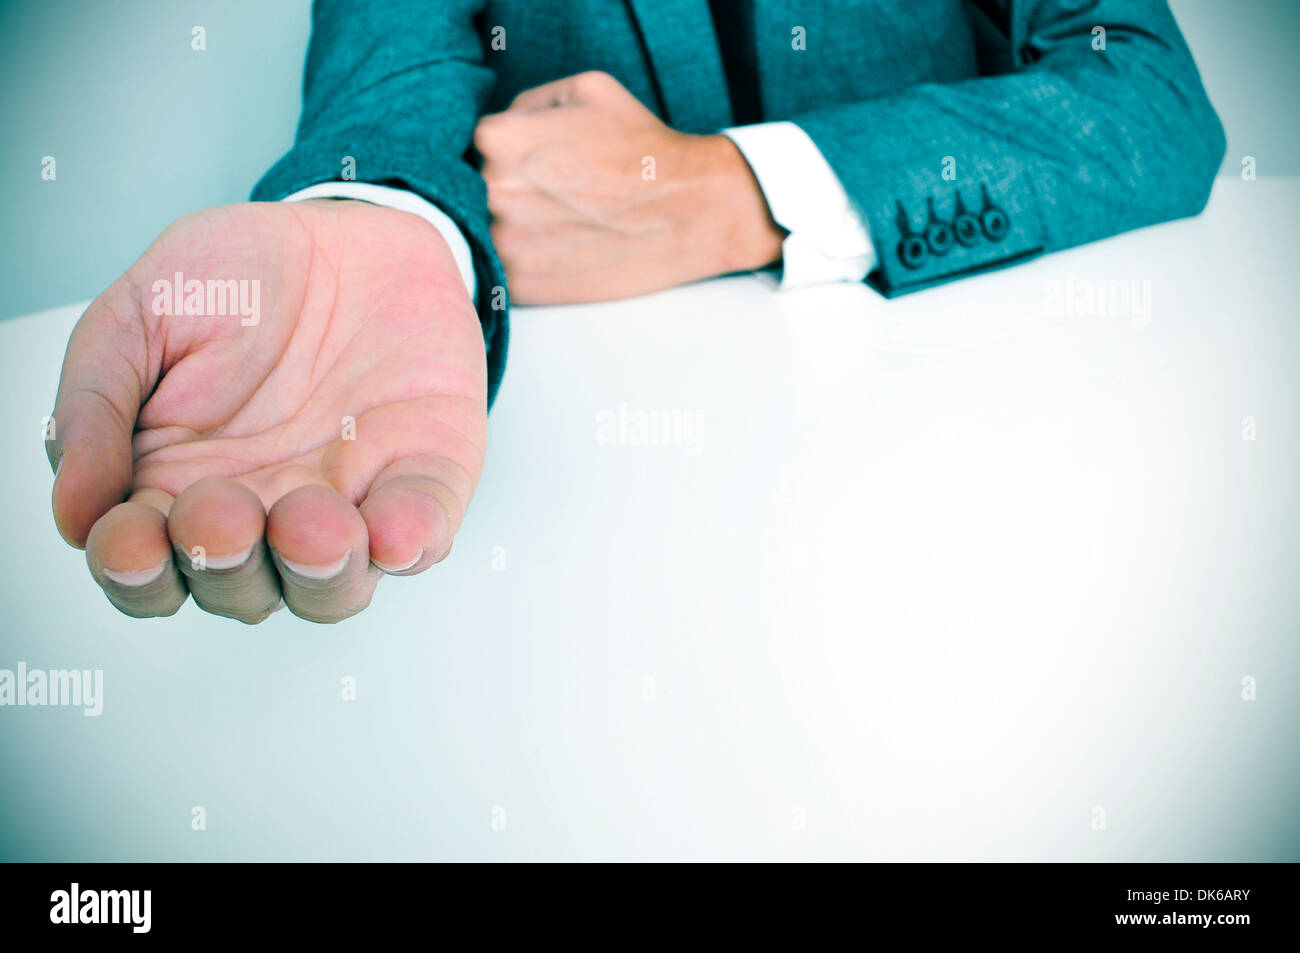 man wearing a suit sitting in a table with an outstretched hand Stock Photo